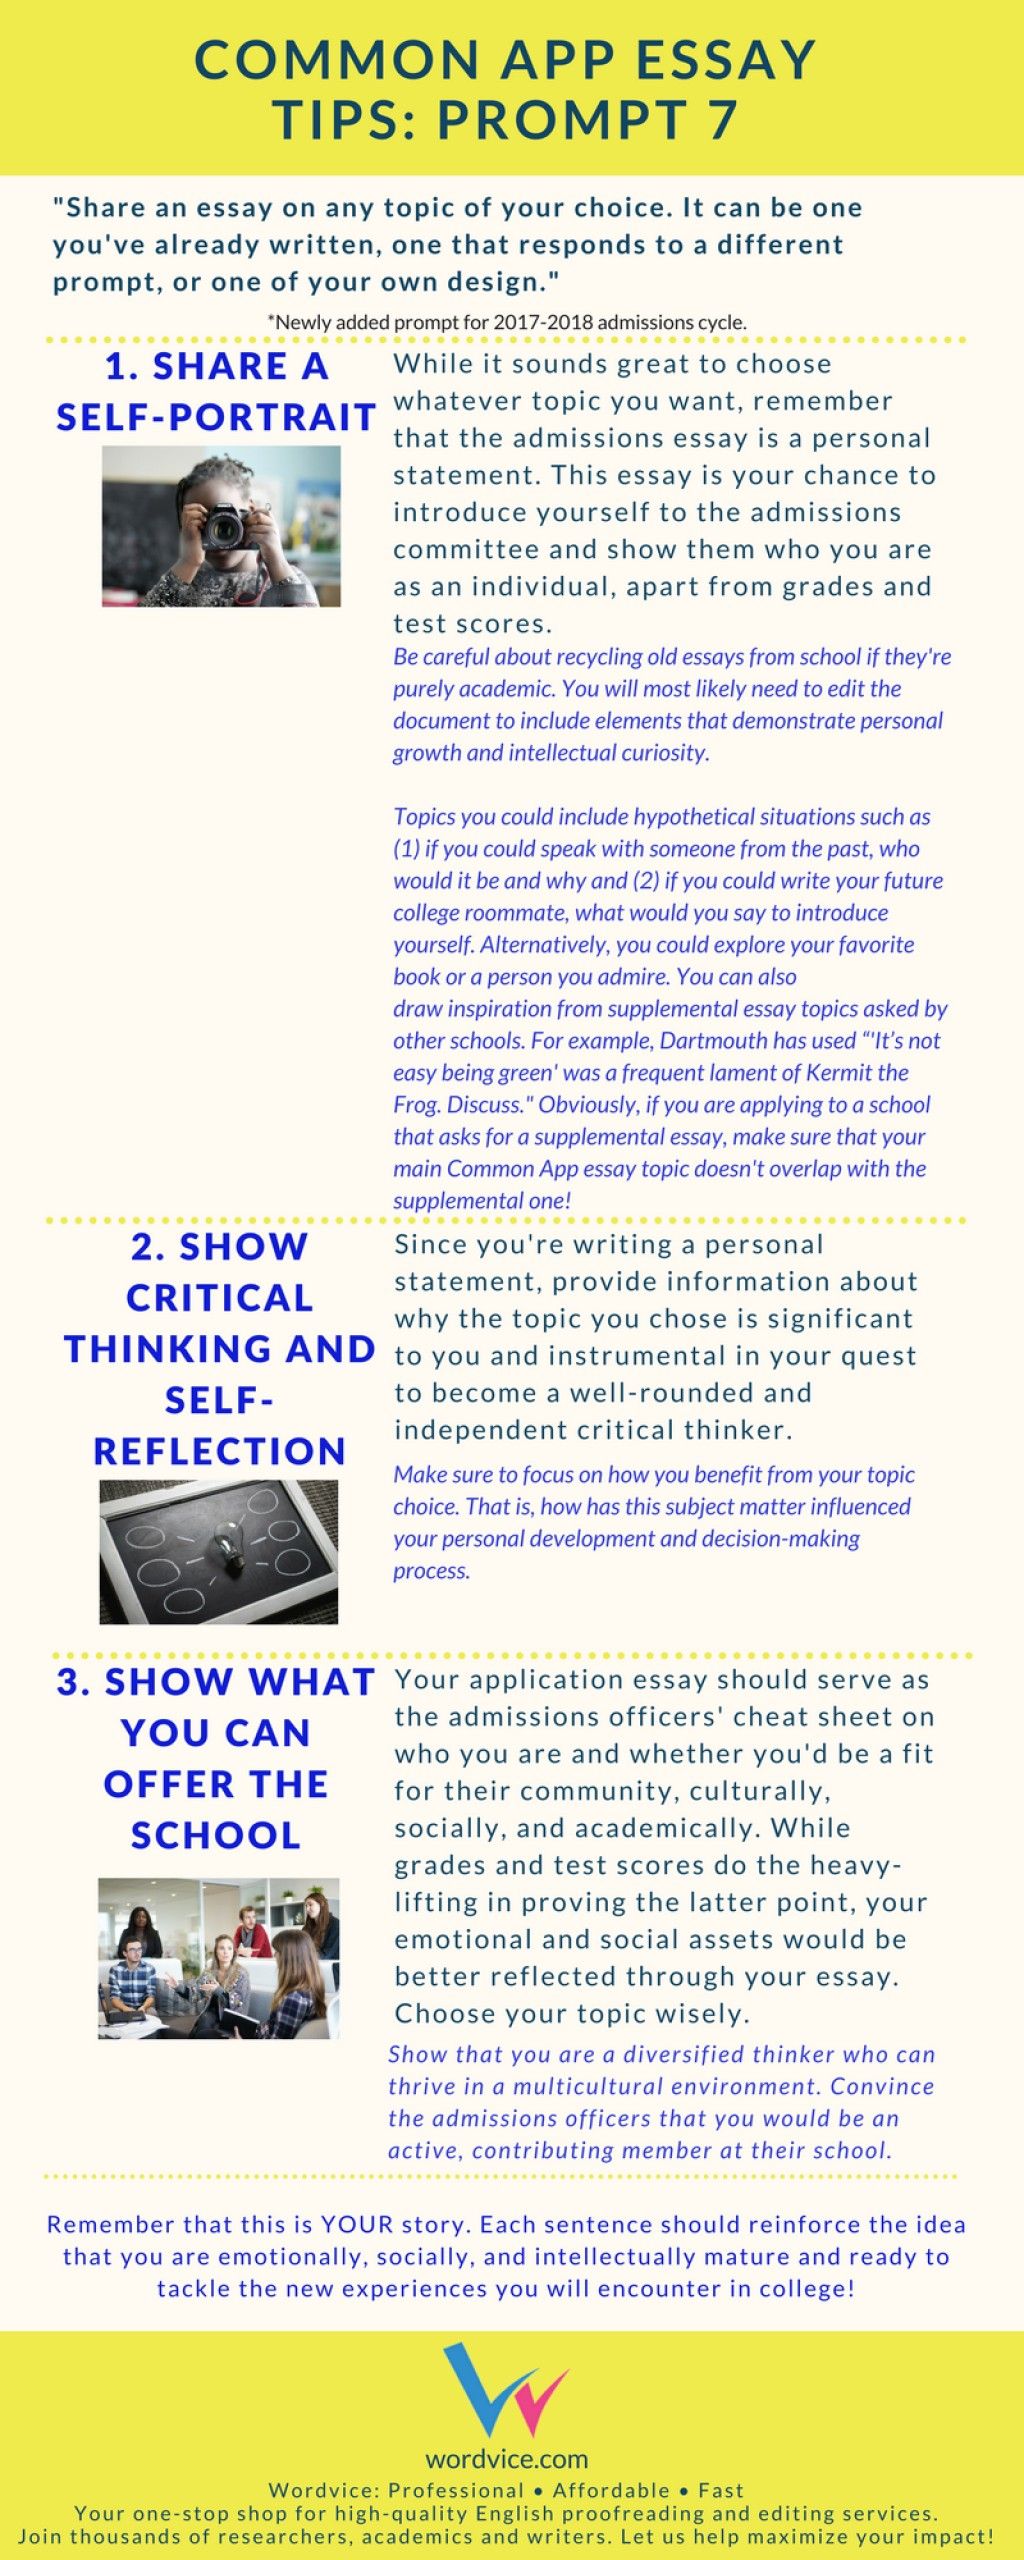 019 Common Essay Prompts App Brainstormprompt Formidable Examples Prompt 4 Scholarship Large